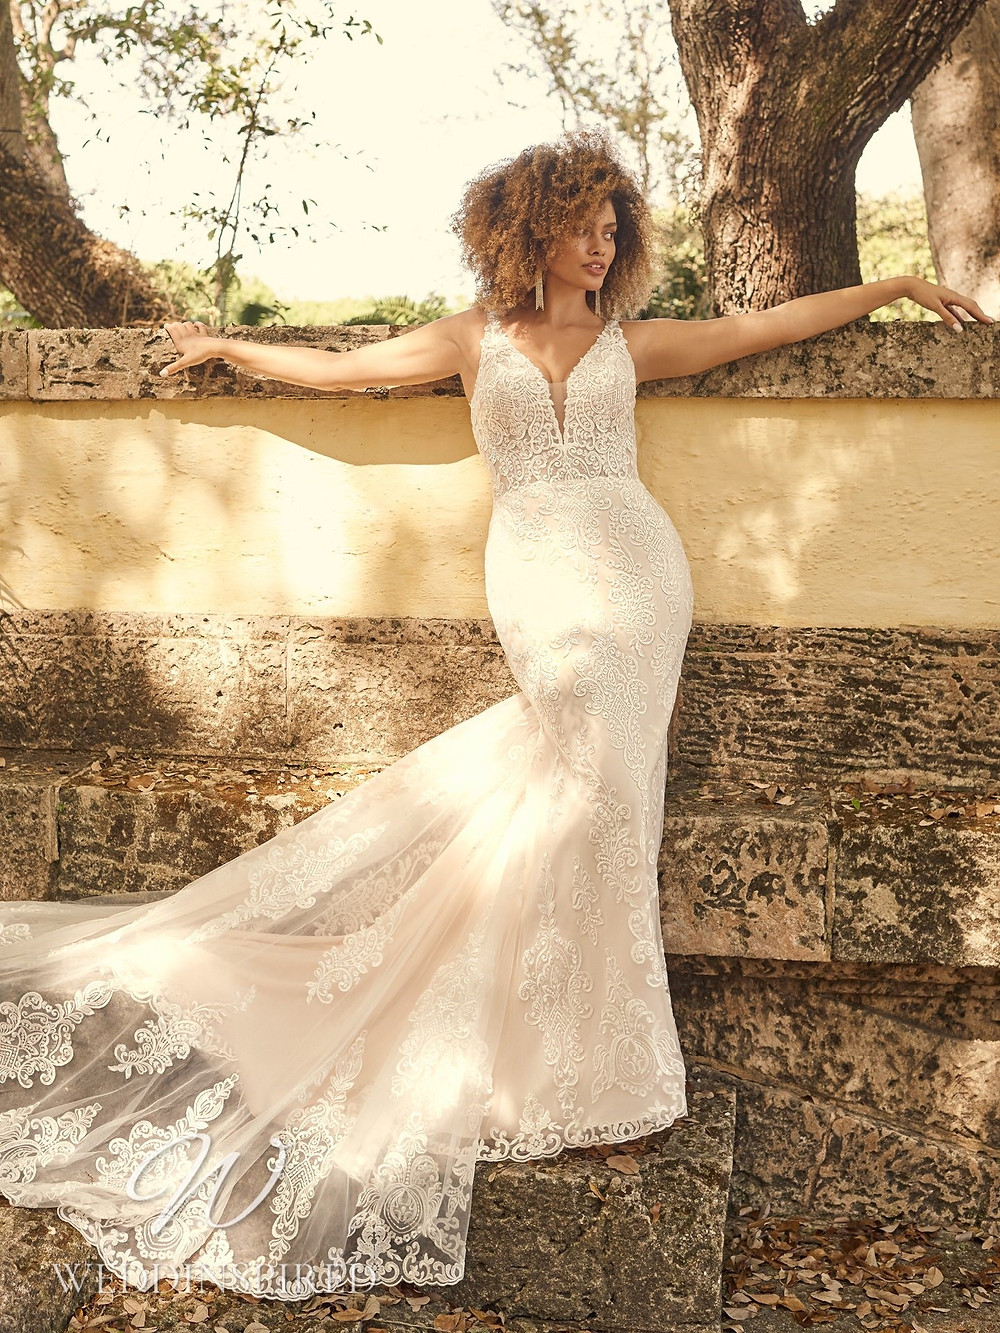 A Maggie Sottero 2021 lace mermaid wedding dress